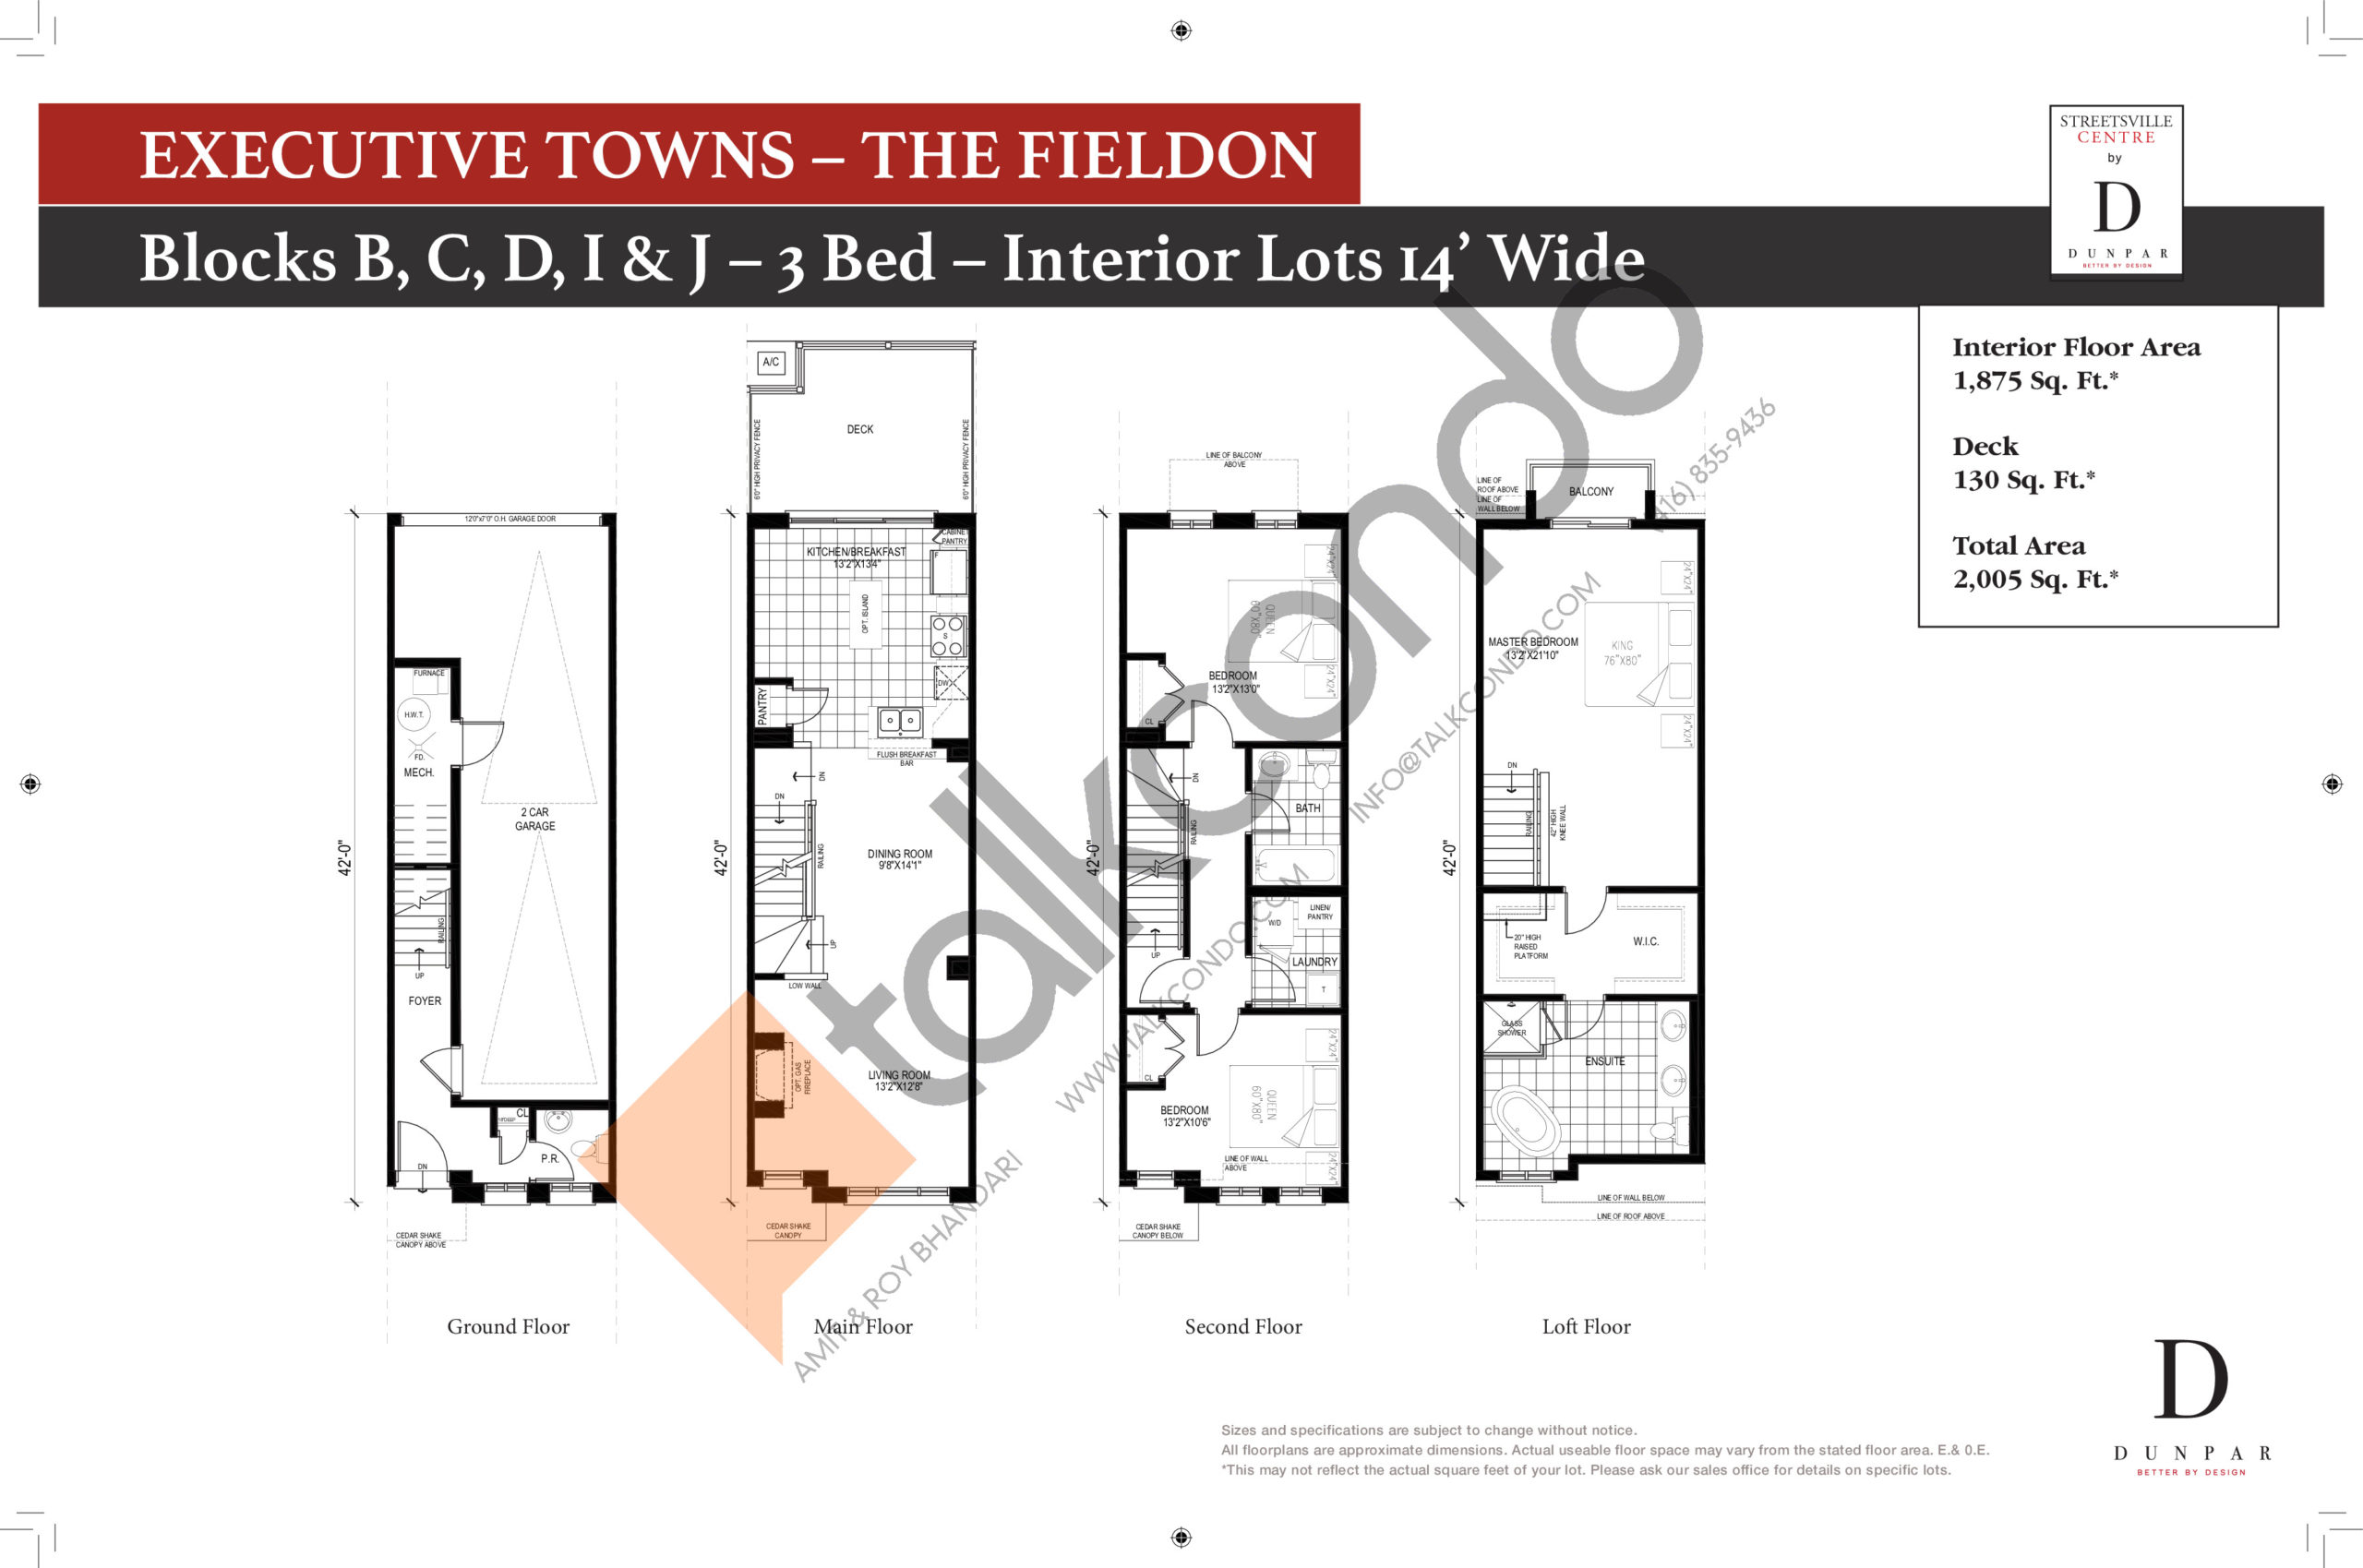 The Fieldon Floor Plan at Streetsville Centre - 1875 sq.ft